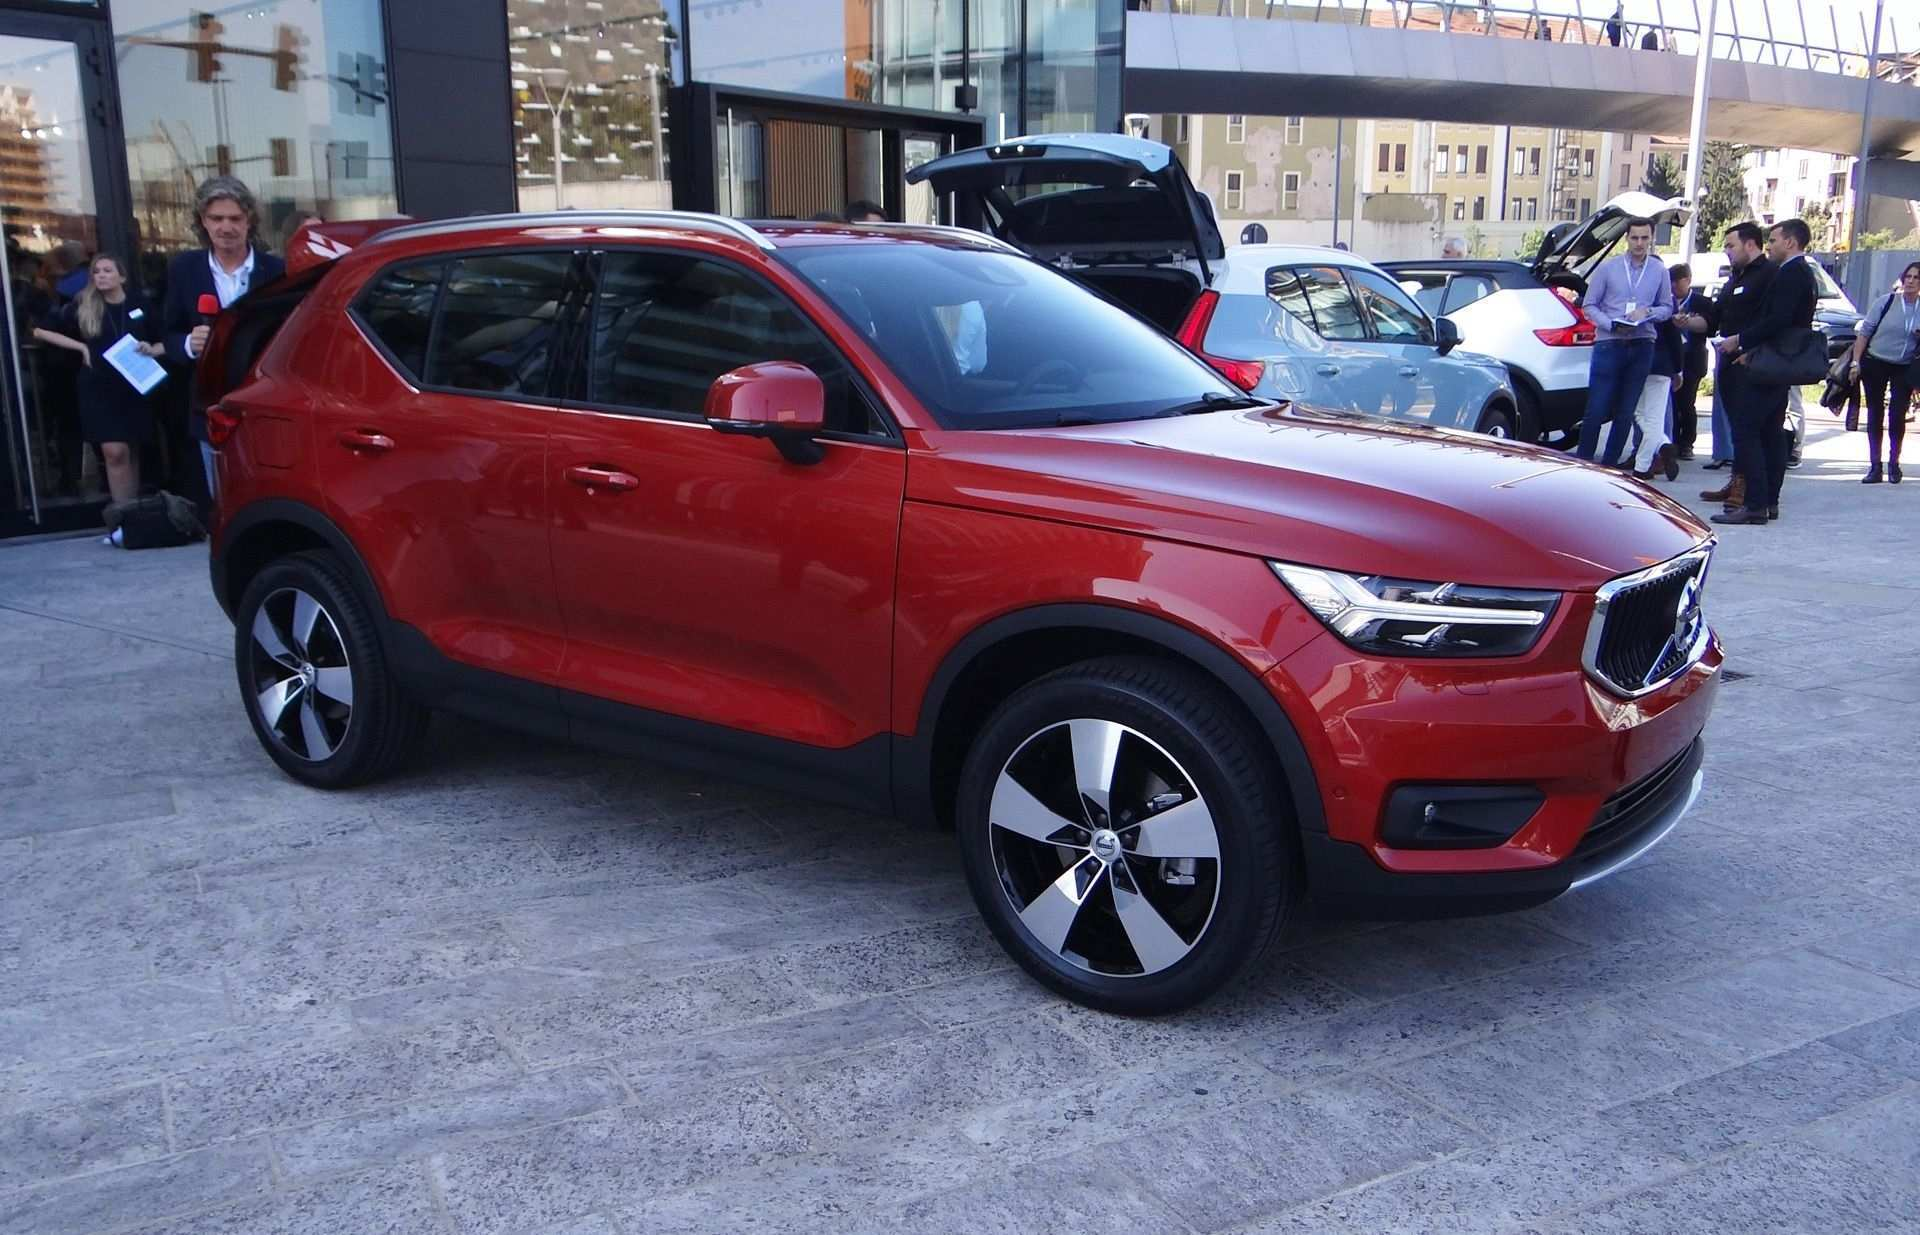 53 Best Review Best Volvo Electric Suv 2019 First Drive Price Performance And Review Concept by Best Volvo Electric Suv 2019 First Drive Price Performance And Review